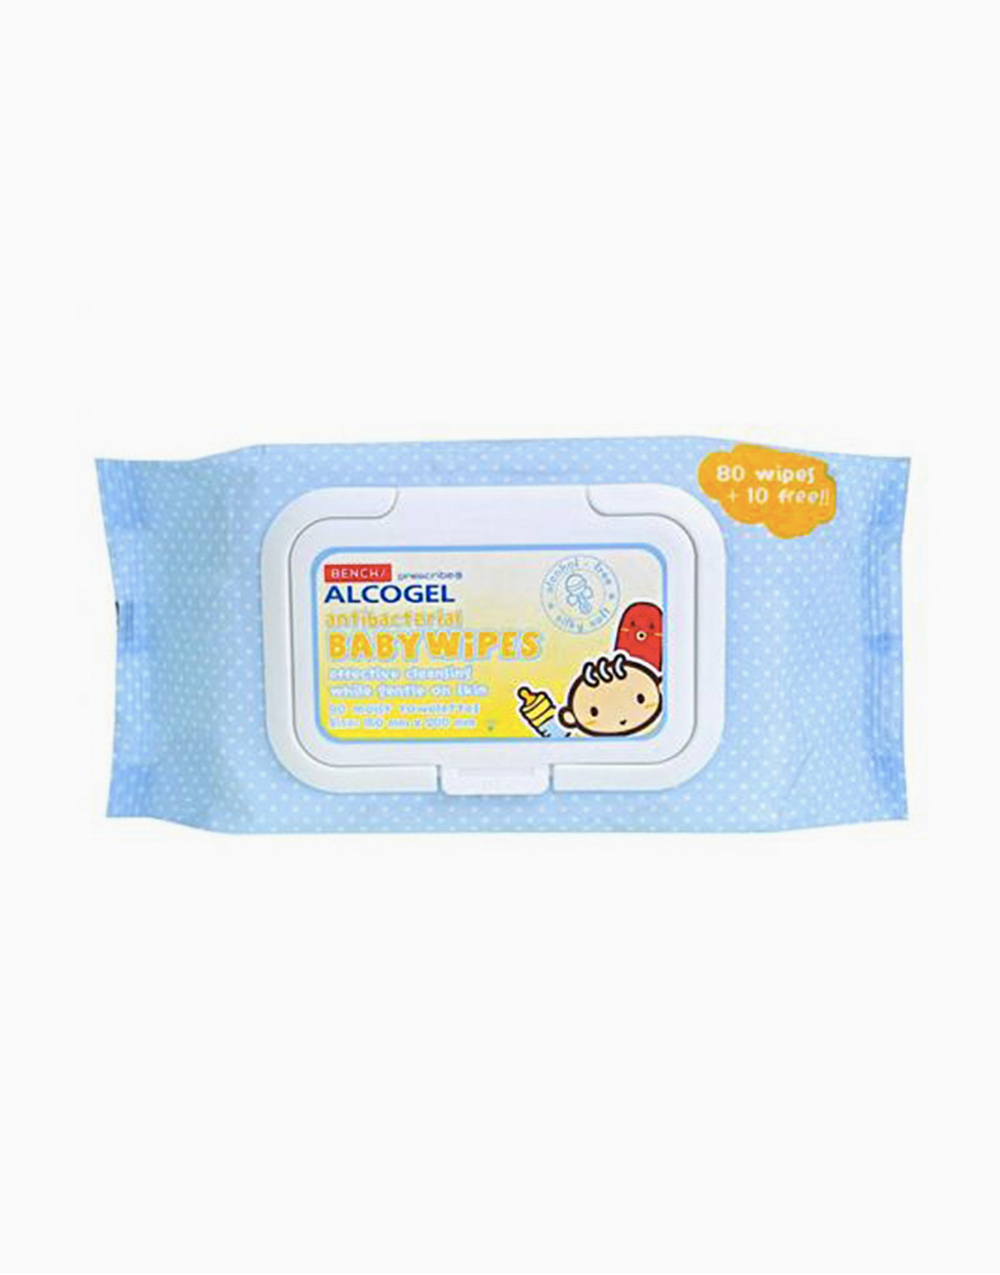 Alcogel: Antibacterial Baby Wipes (90 Sheets) by BENCH